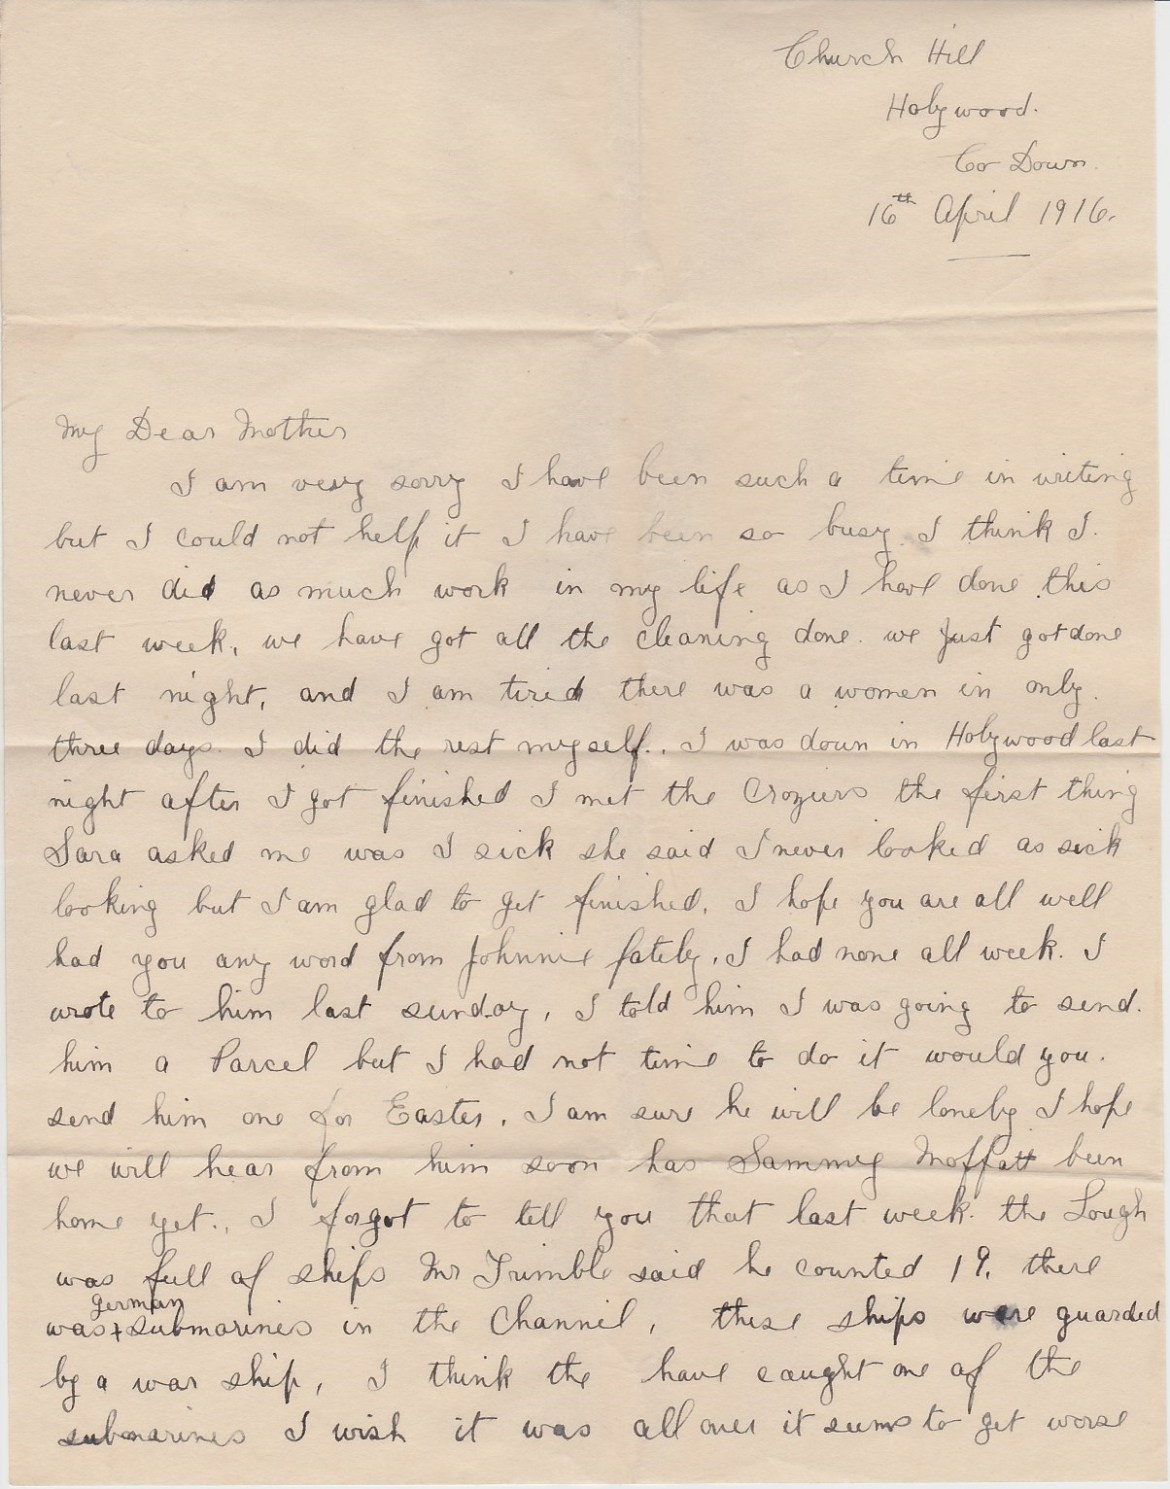 16 04 16 Church Hill Jeannie letter 01